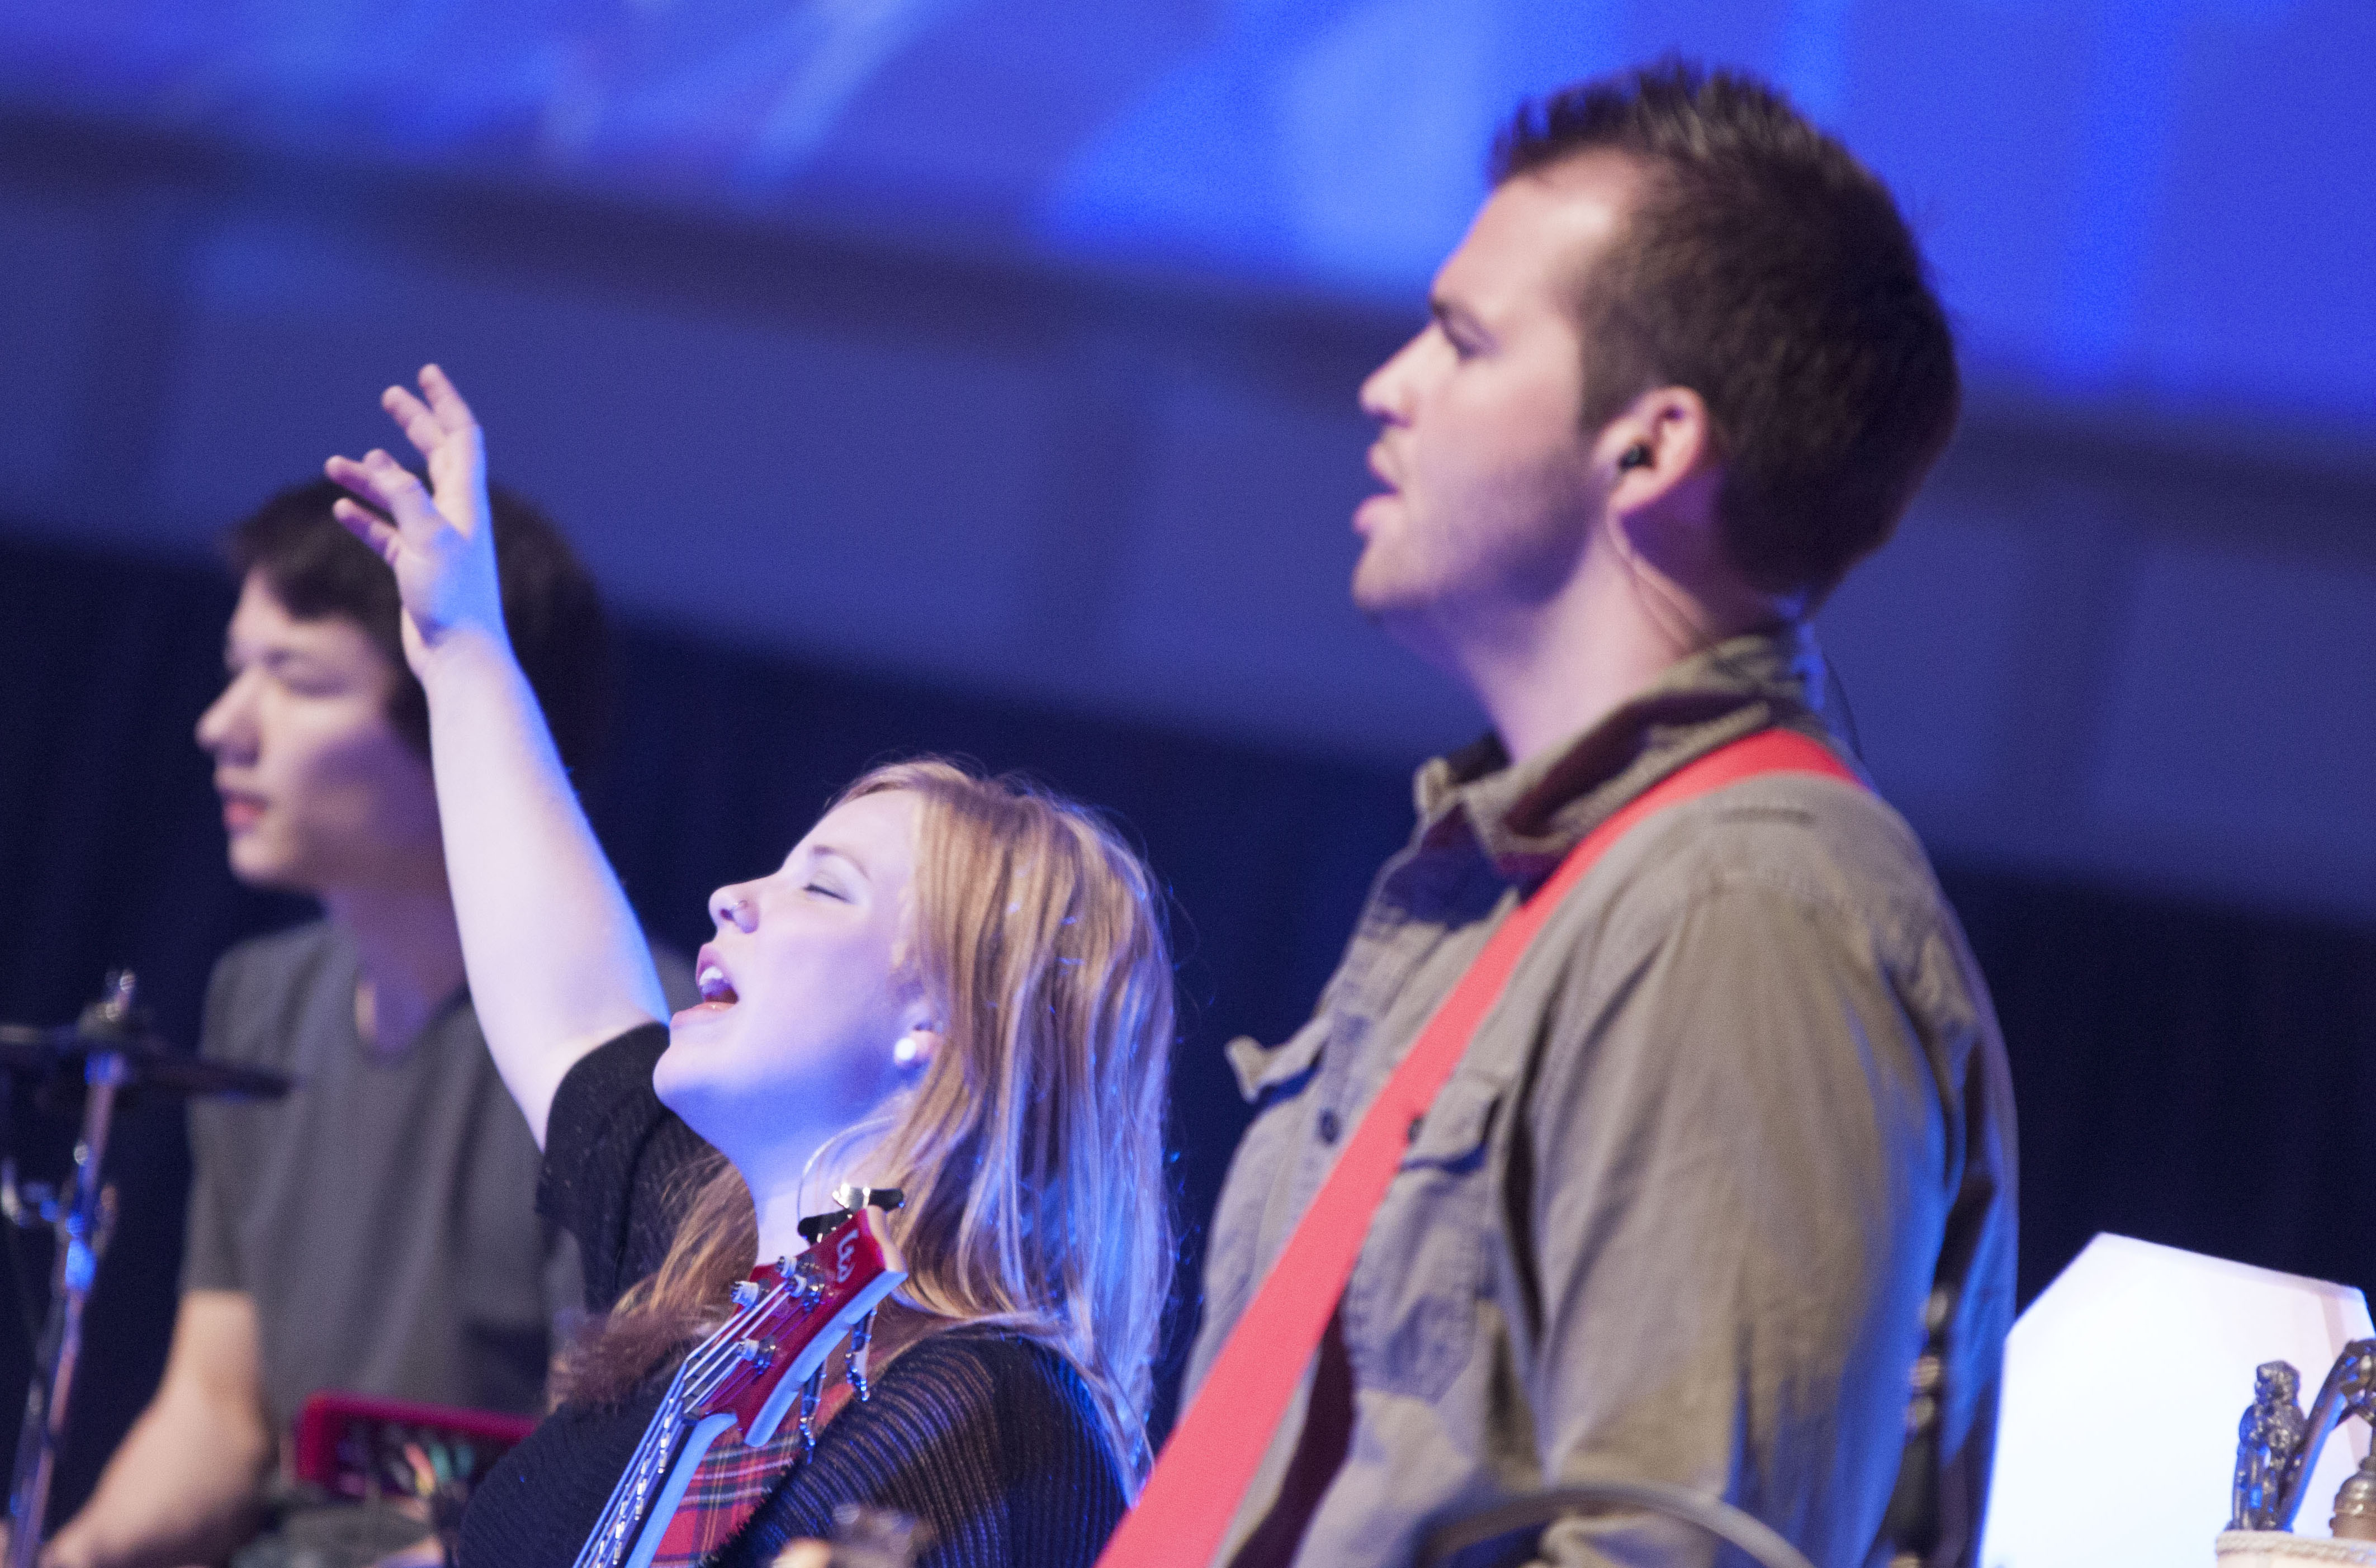 The HeartSong ministry uses music and worship to serve at camps and churches across the nation. Photo credit: Stephen Port/Cedarville University